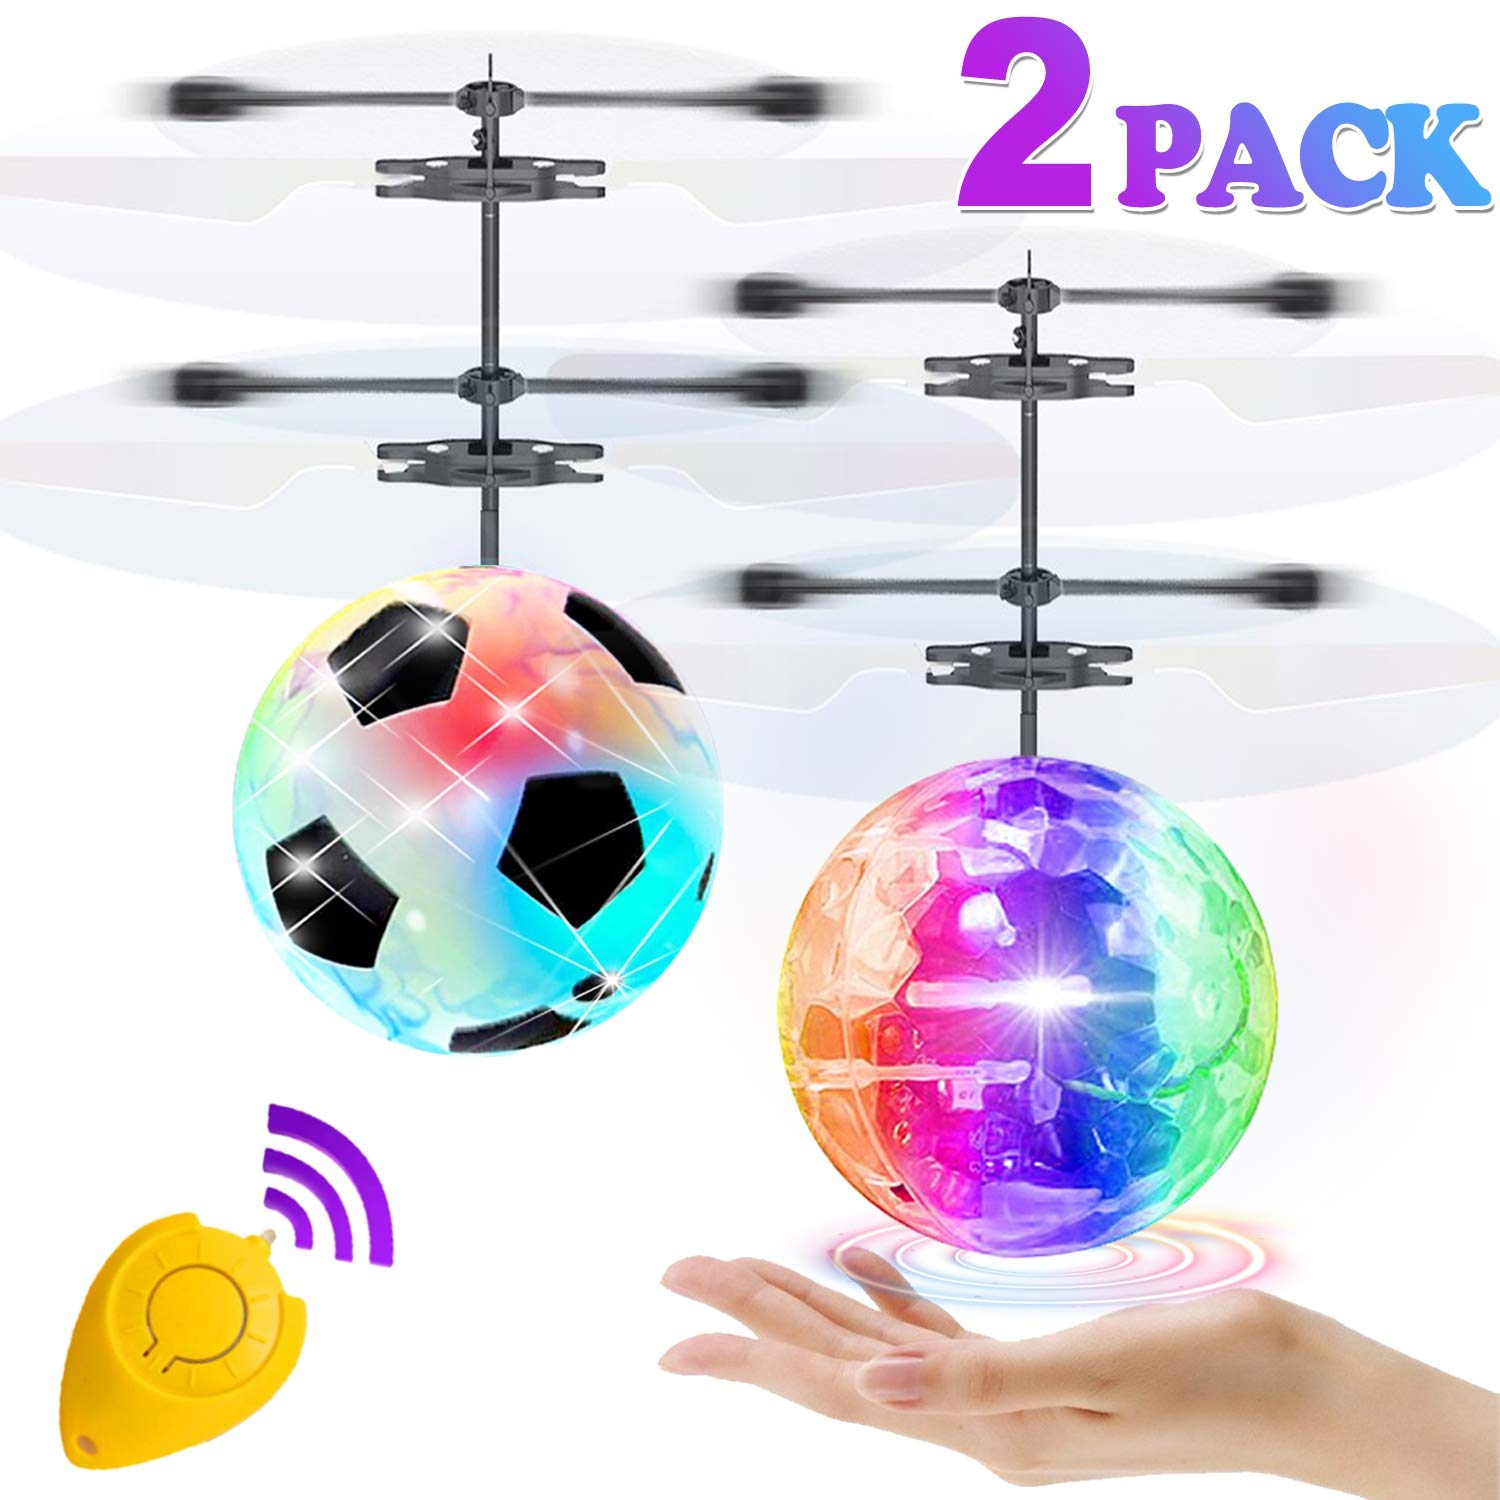 GBD 2 Pack Flying Ball Toys, RC Flying Toys for Kids Boys Girls Birthday Gifts Remote Control Drone Helicopter Rechargeable Light Up Ball Infrared Induction RC Drone for Indoor and Outdoor Games by GBD